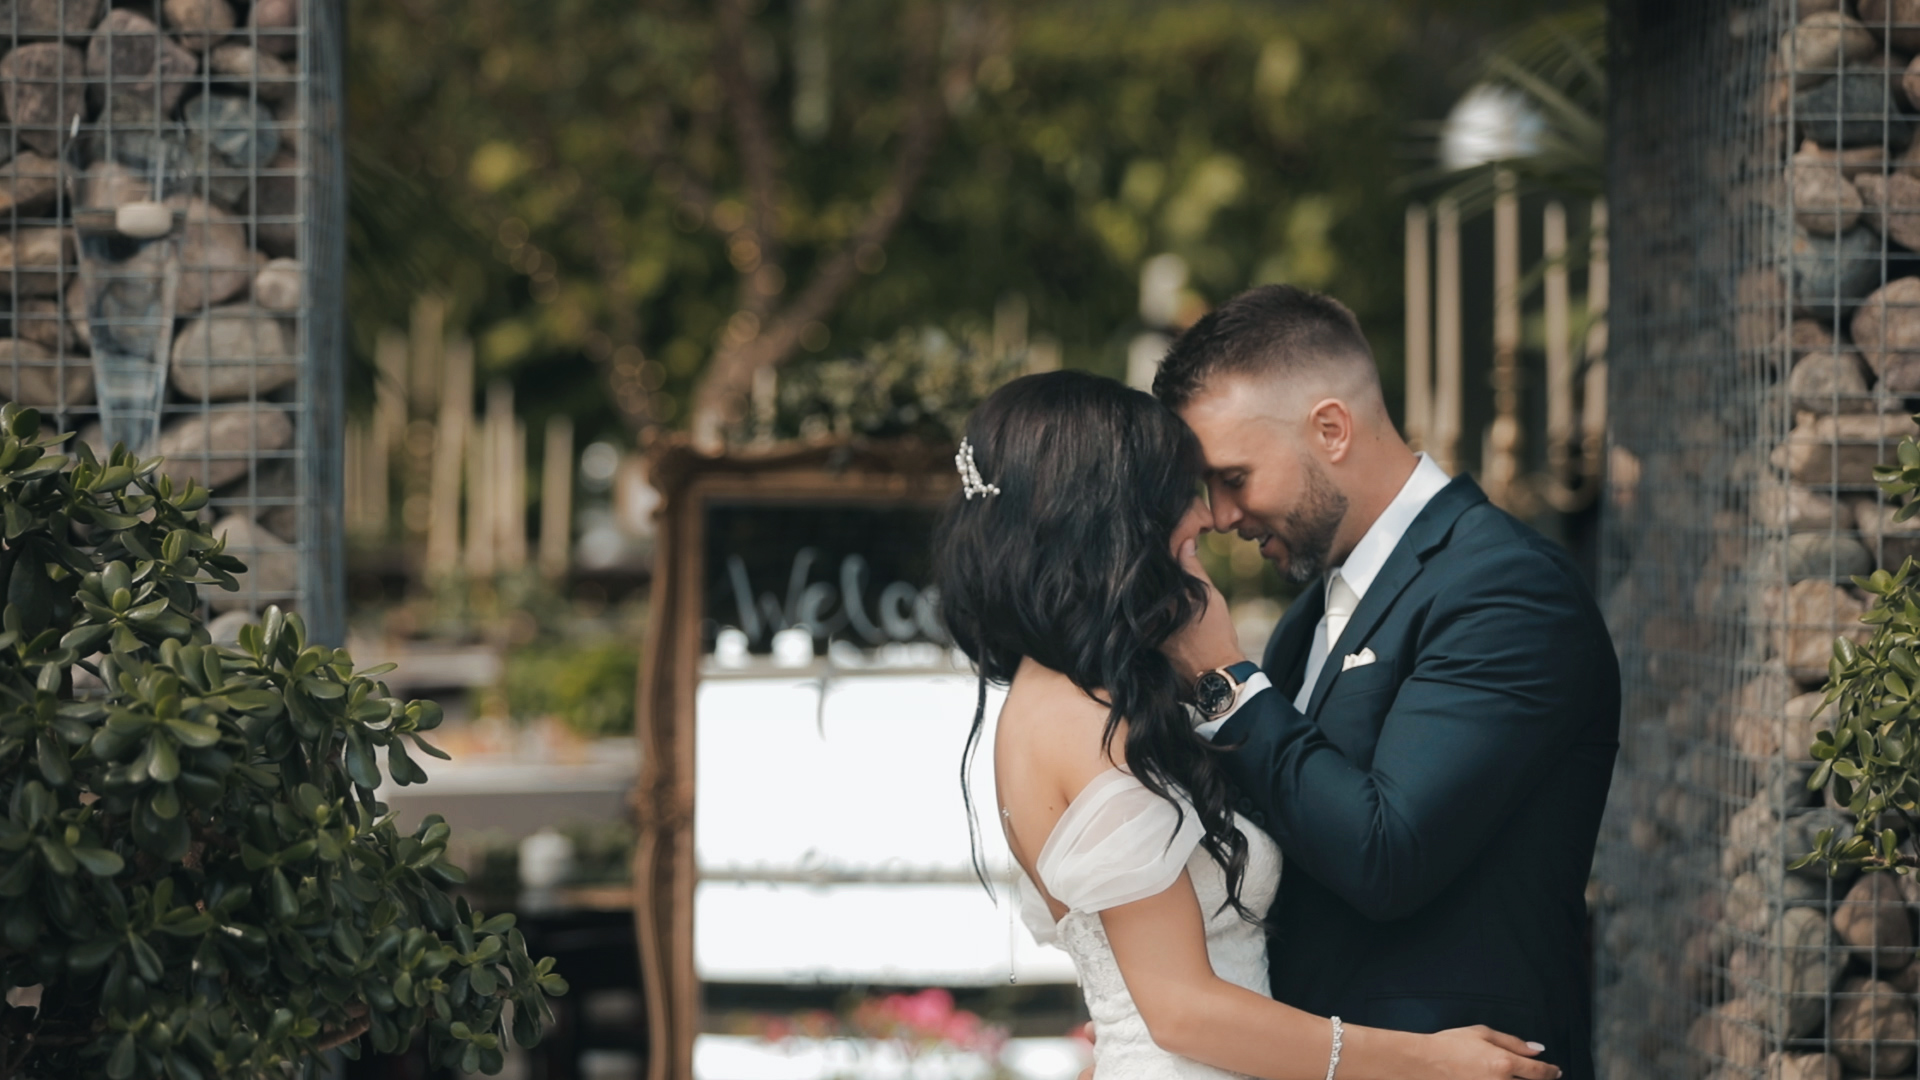 Emily + Jordan | West Bloomfield Township, Michigan | Planterra Conservatory, West Bloomfield Township